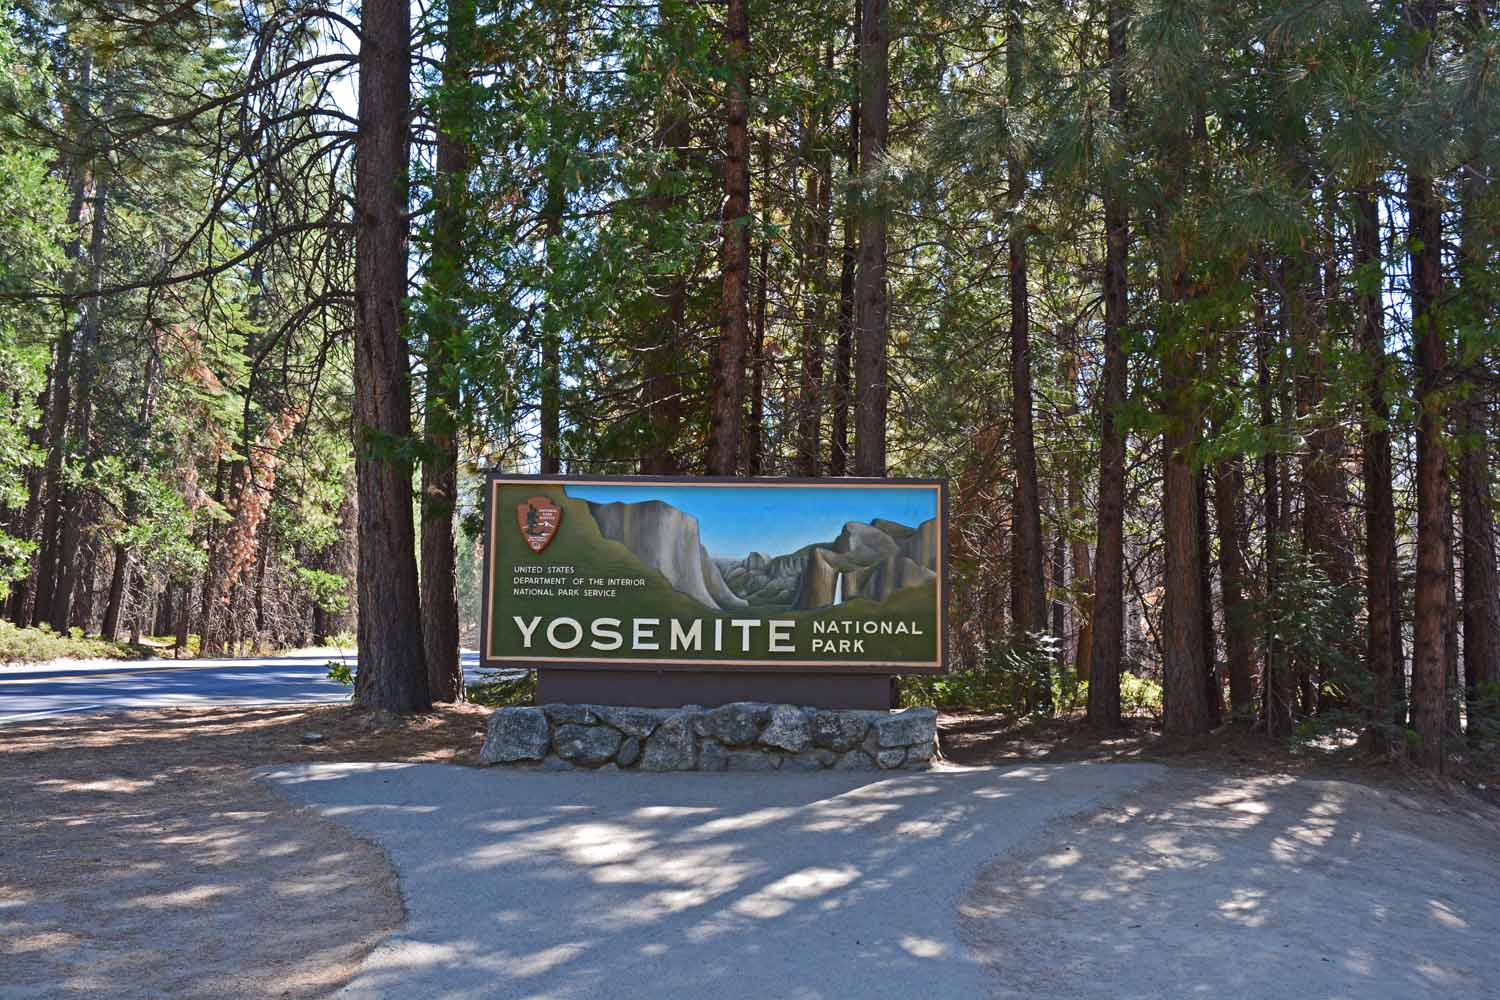 Yosemite National Park was a bucket list stop